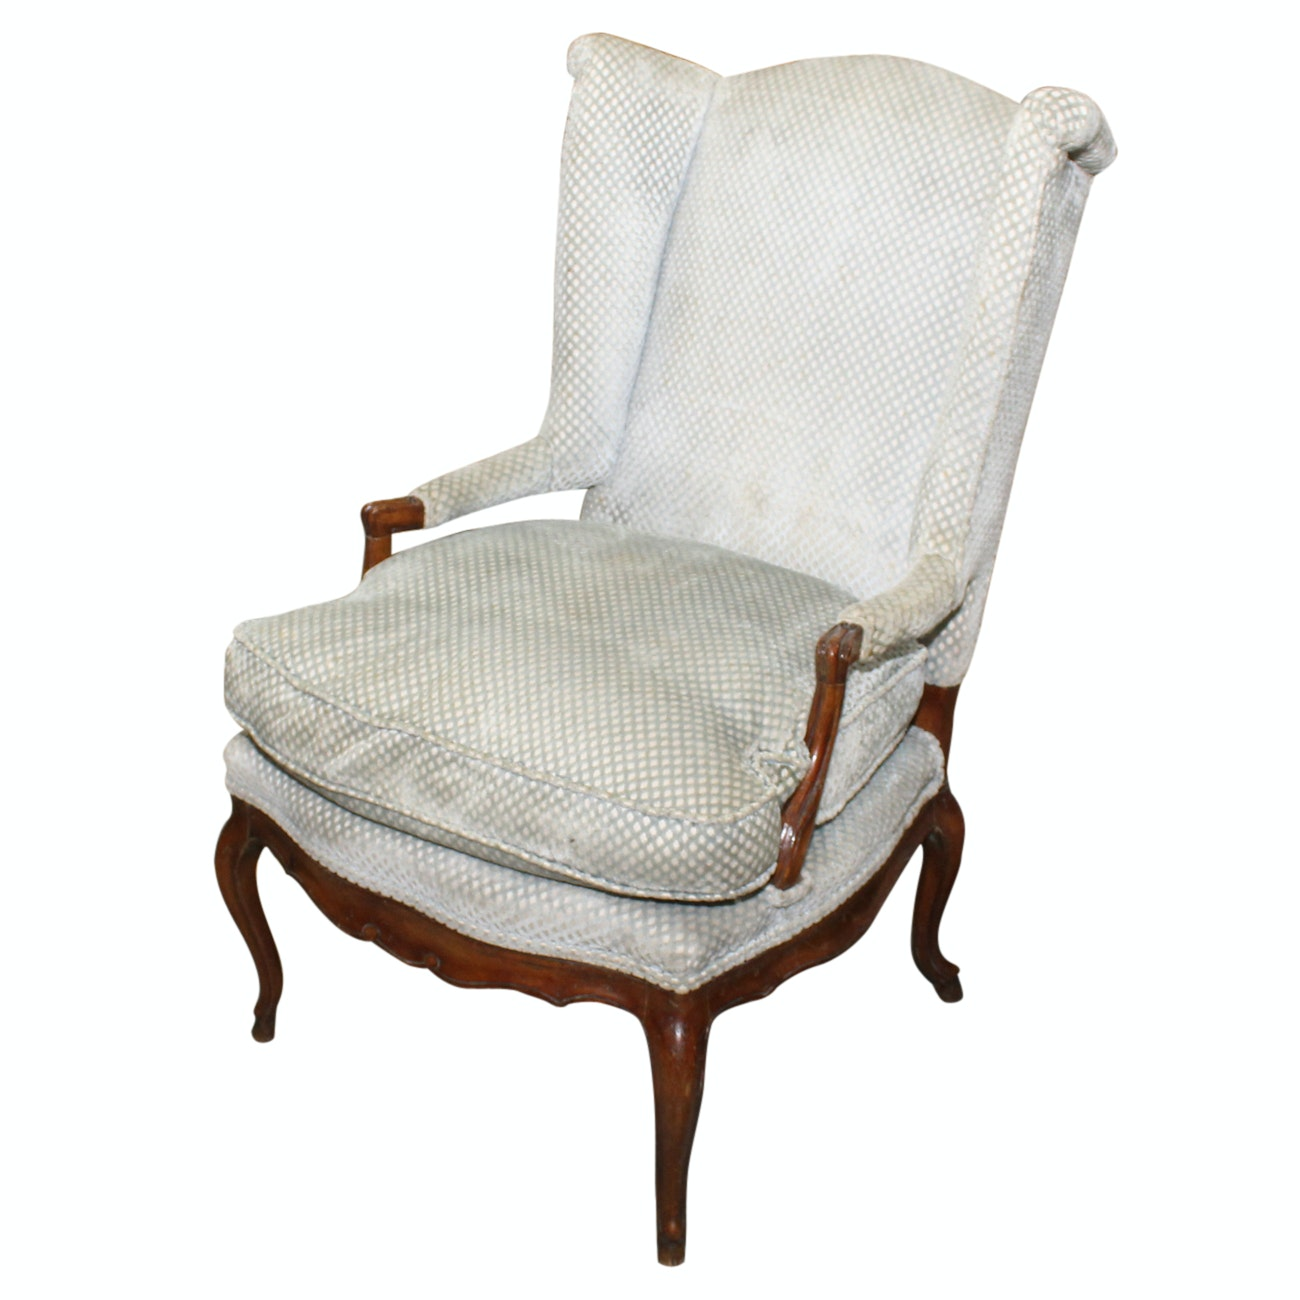 French Provincial Style Carved Fruitwood Wing Chair, 20th Century